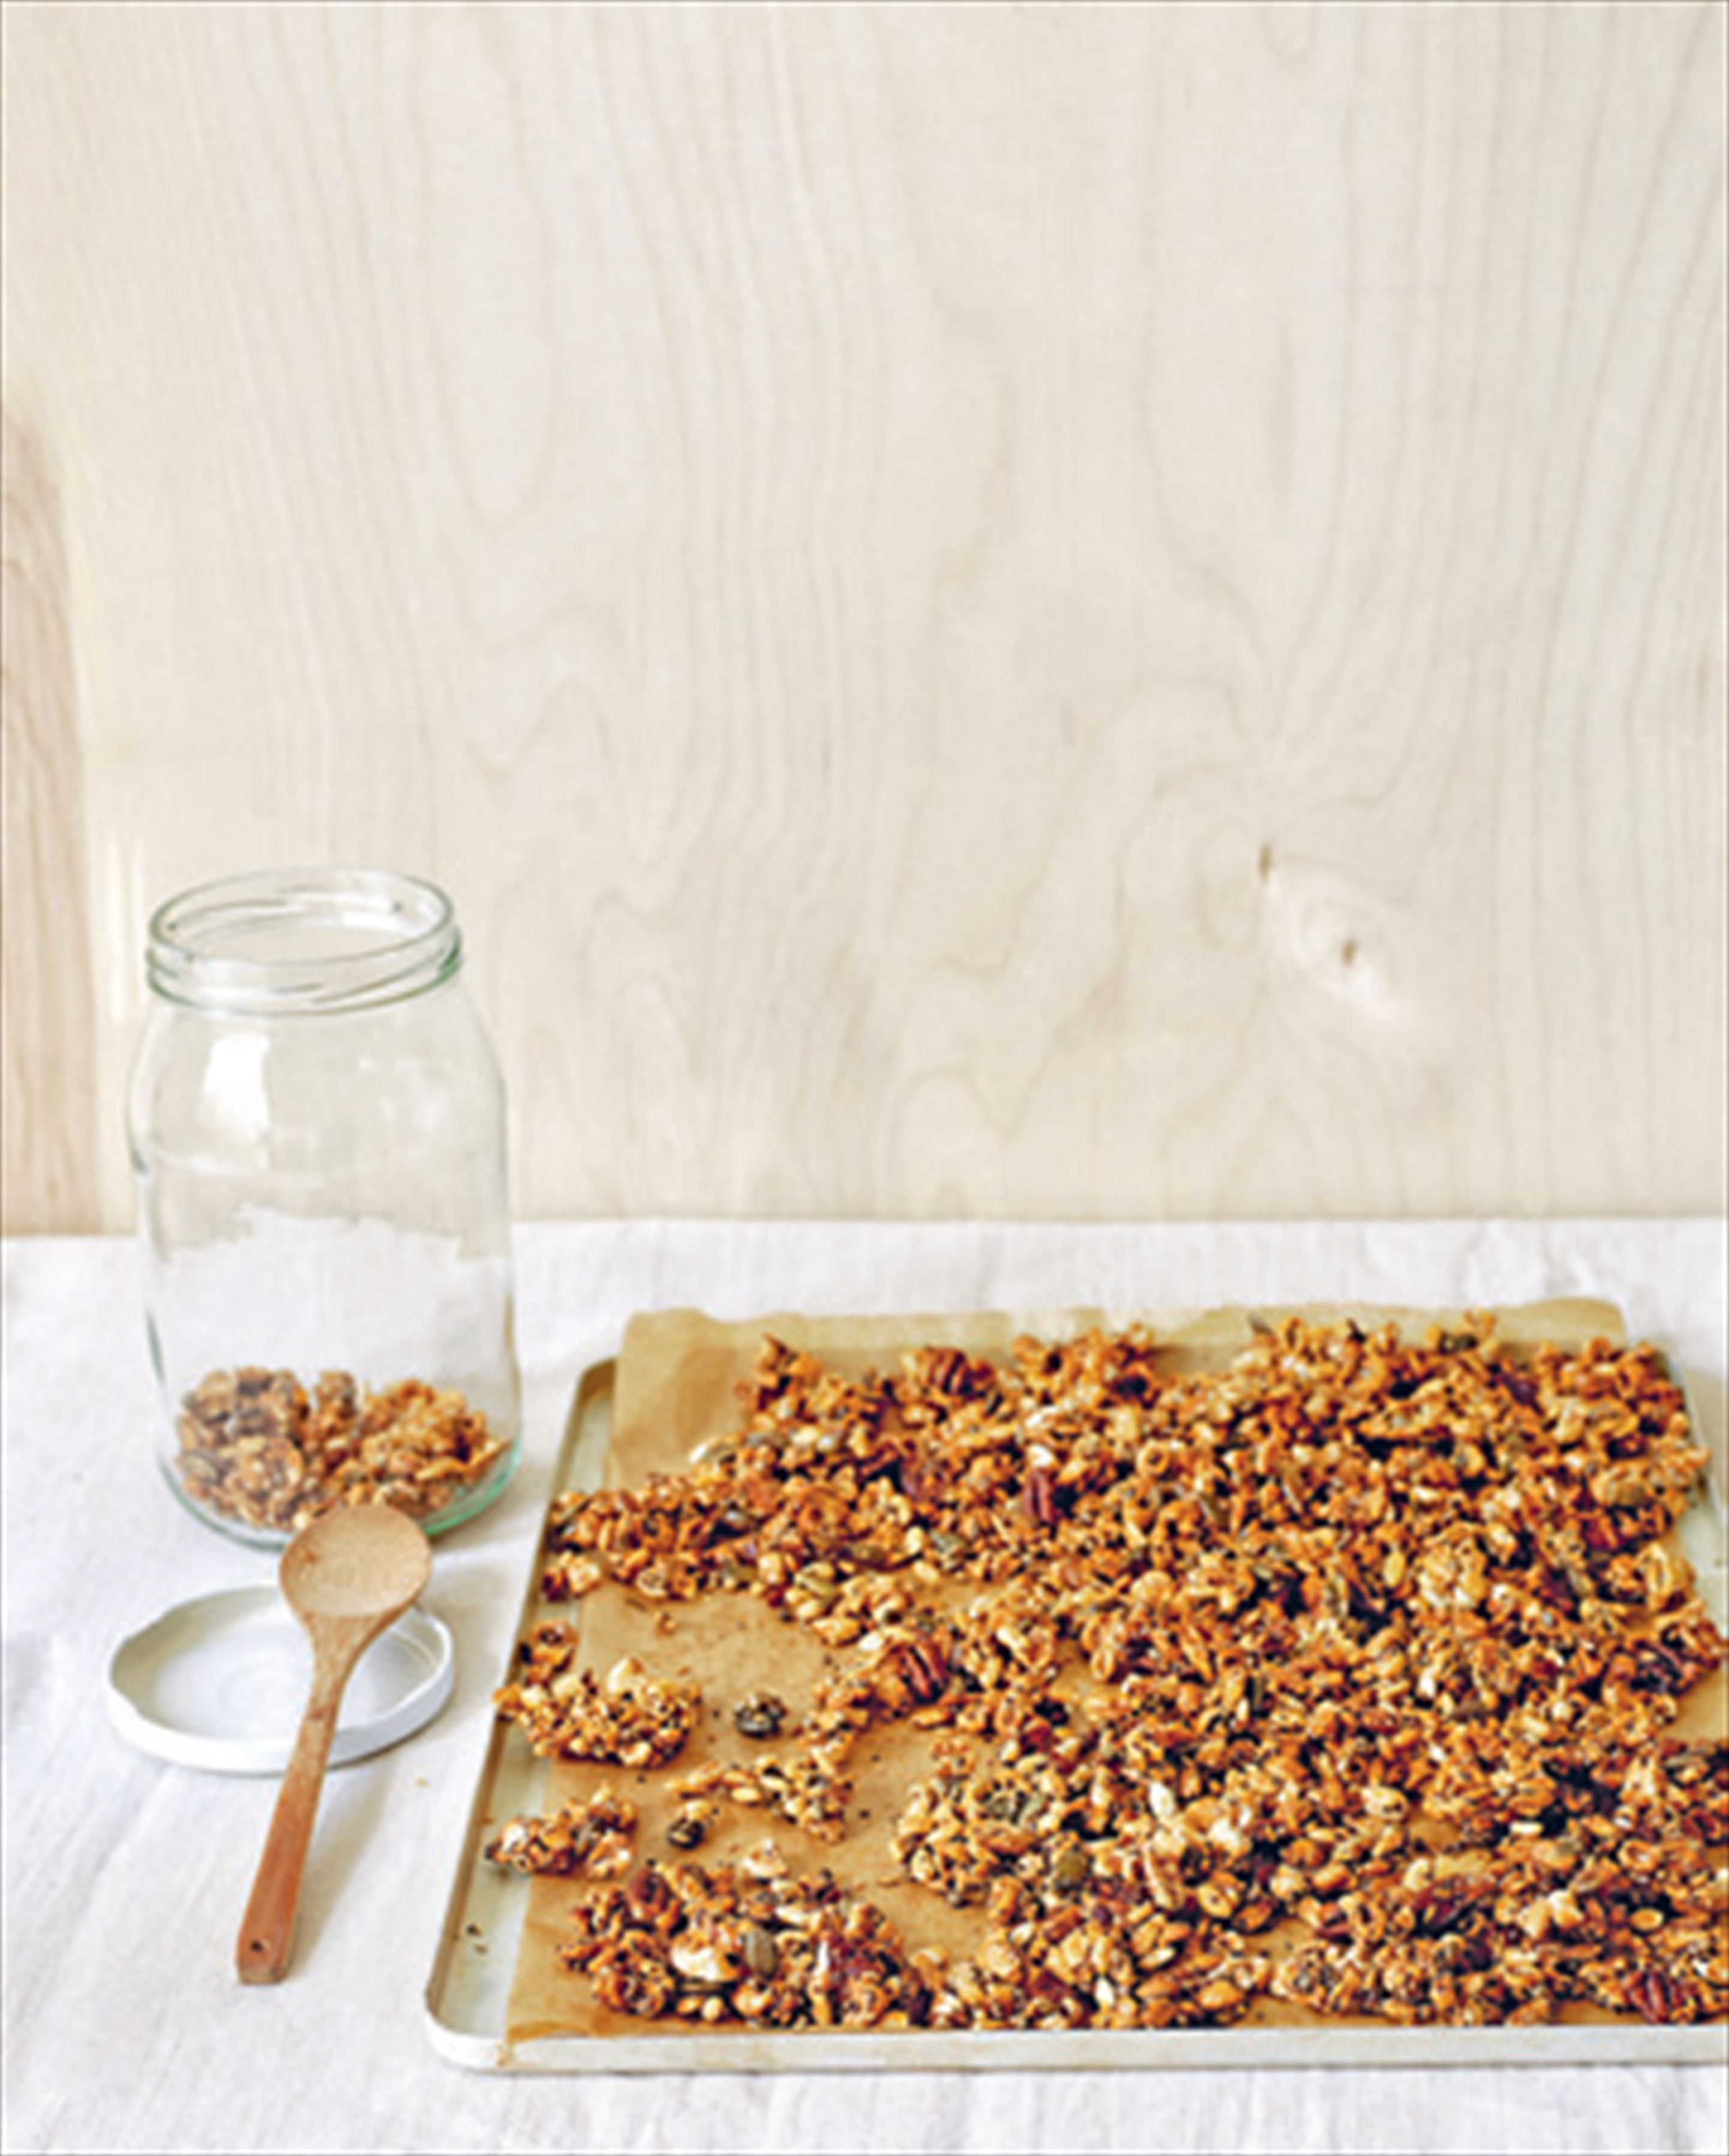 Honey-puffed wholegrain cereal